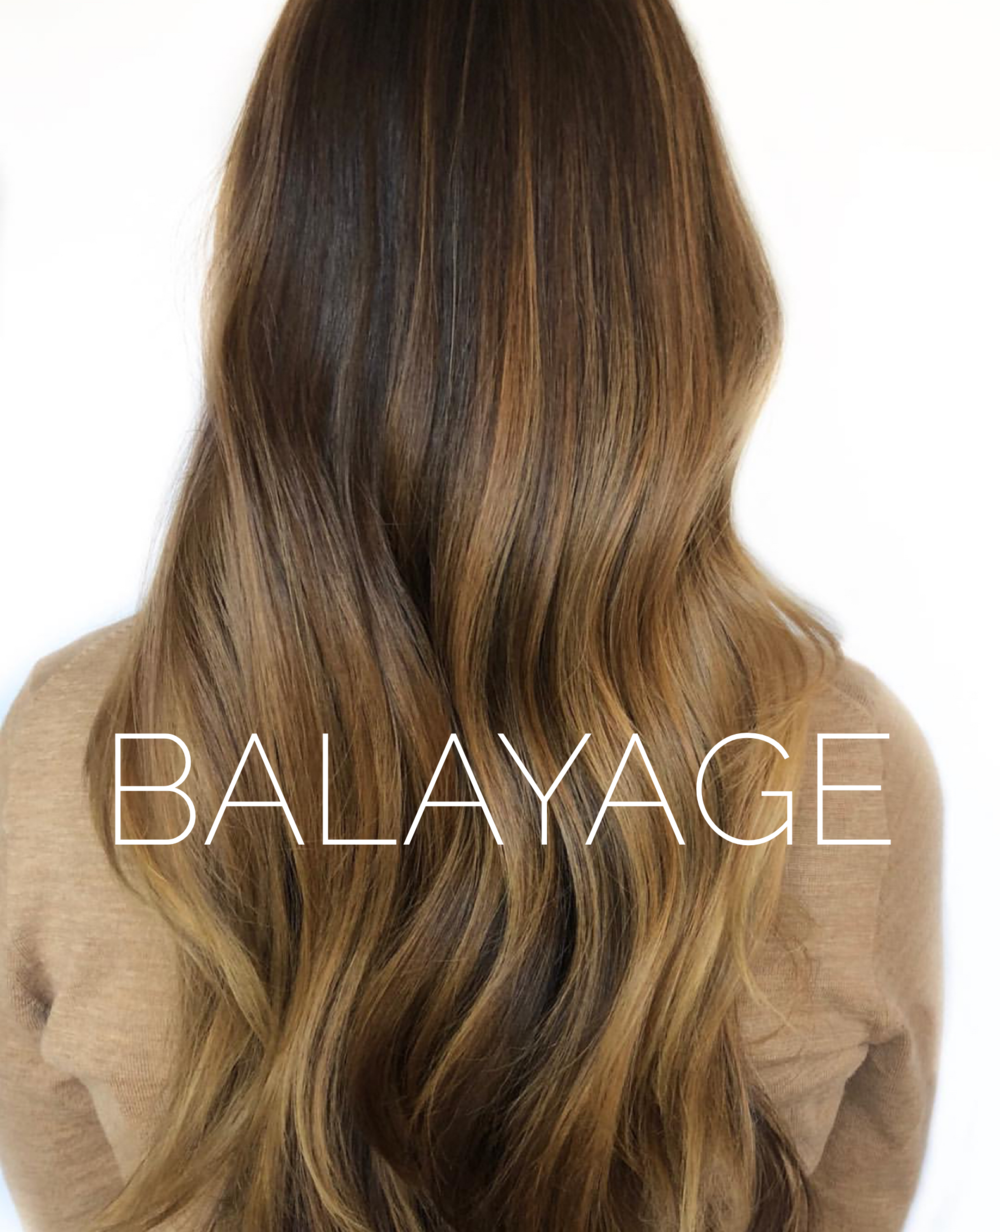 Handpainted Packages - 250+ | Balayage175+ | Baby Balayage (face frame only)Our balayage packages include our favorite bond protector + (1) customizable gloss + our Signature Instagram worthy style (blow dry or waves)Ask your stylist about Balayage Maintenance!Got a balayage? Great. Now it's time to maintain it's tone & integrity while it grows out gracefully.*Larissa Lake and Co. reserves the right to increase all rates due to density, length & experience